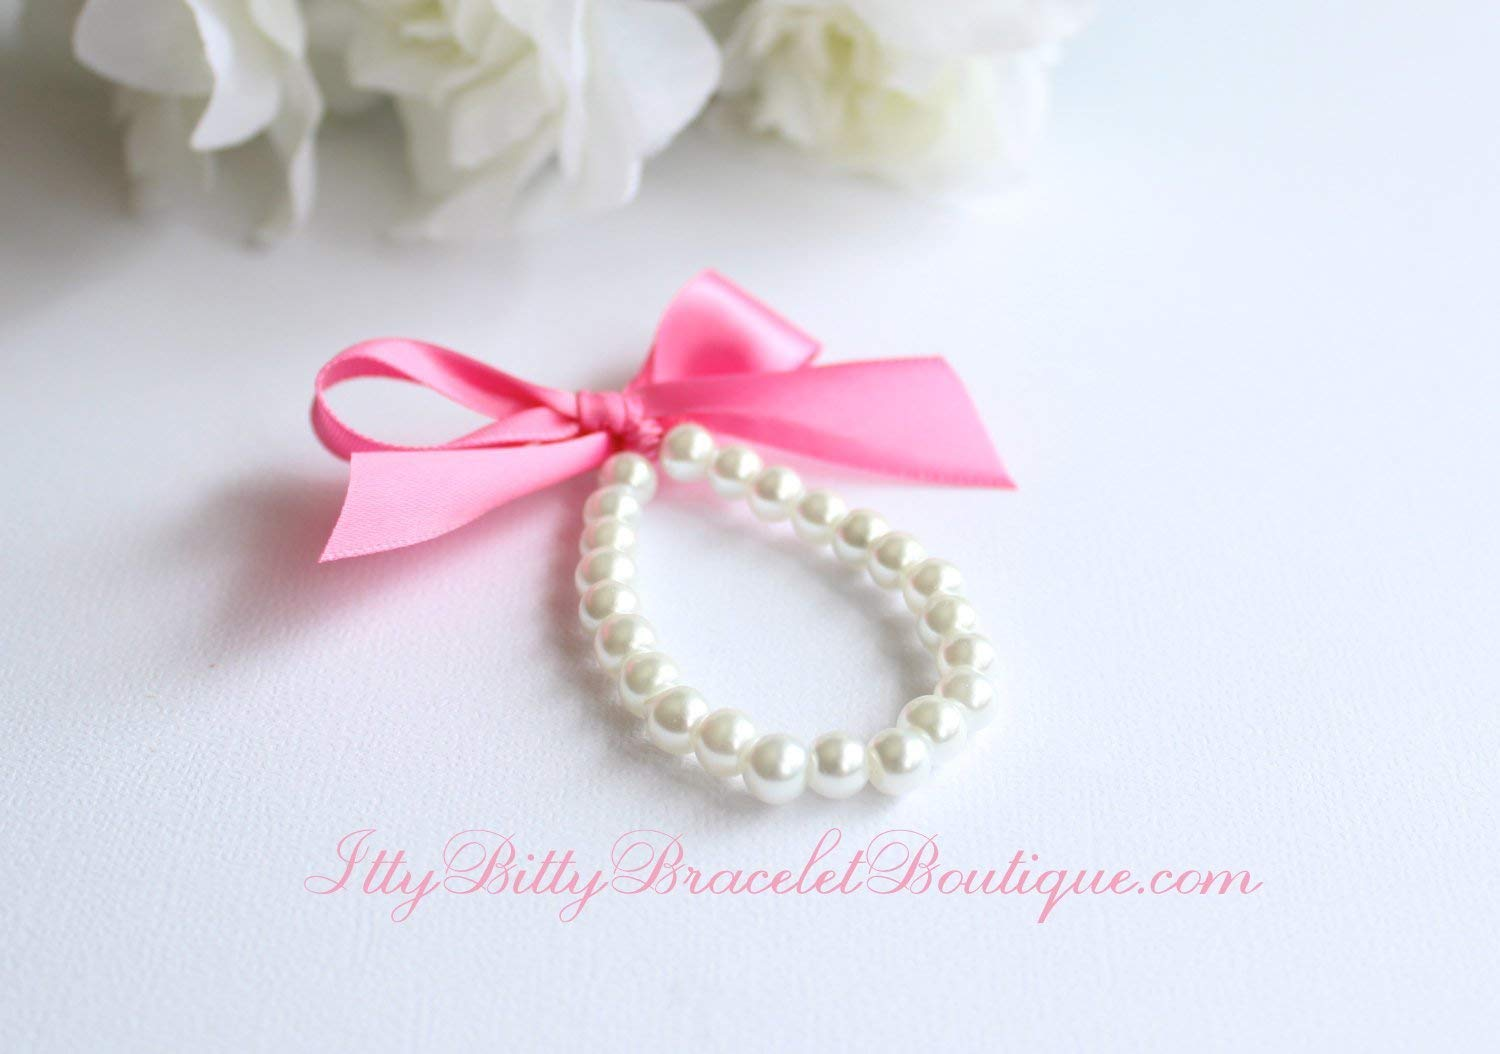 Pearl Bracelet with Bow, Gift for Girls, Baby Girl Bracelet, Baby Gift, Pink Ribbon Custom Colors, Photo Prop, 1st Birthday, First Pearls - FREE Gift Packaging